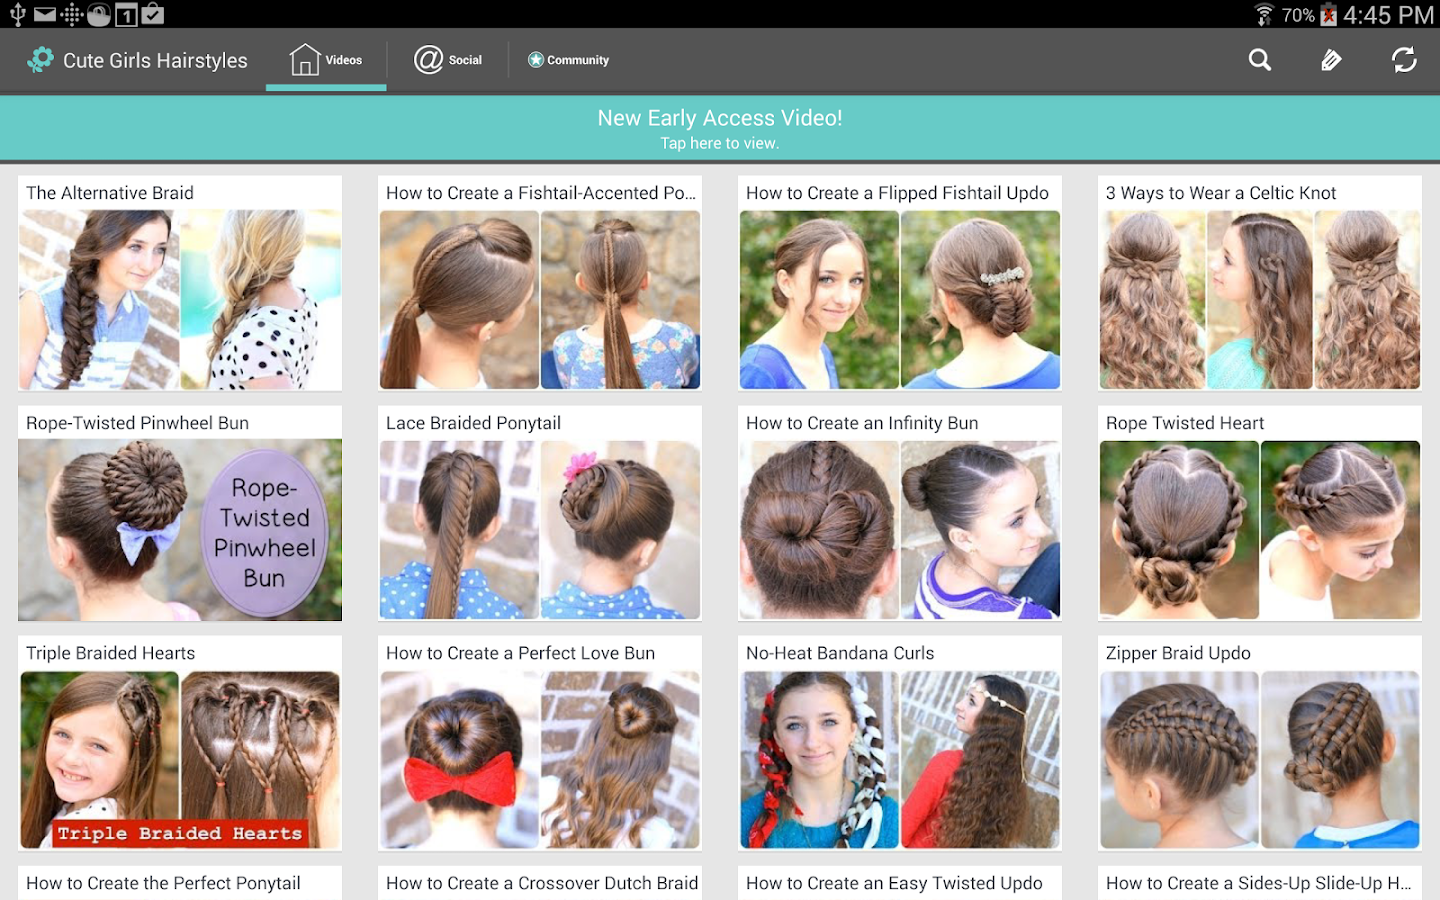 Groovy Cute Girls Hairstyles Android Apps On Google Play Hairstyle Inspiration Daily Dogsangcom